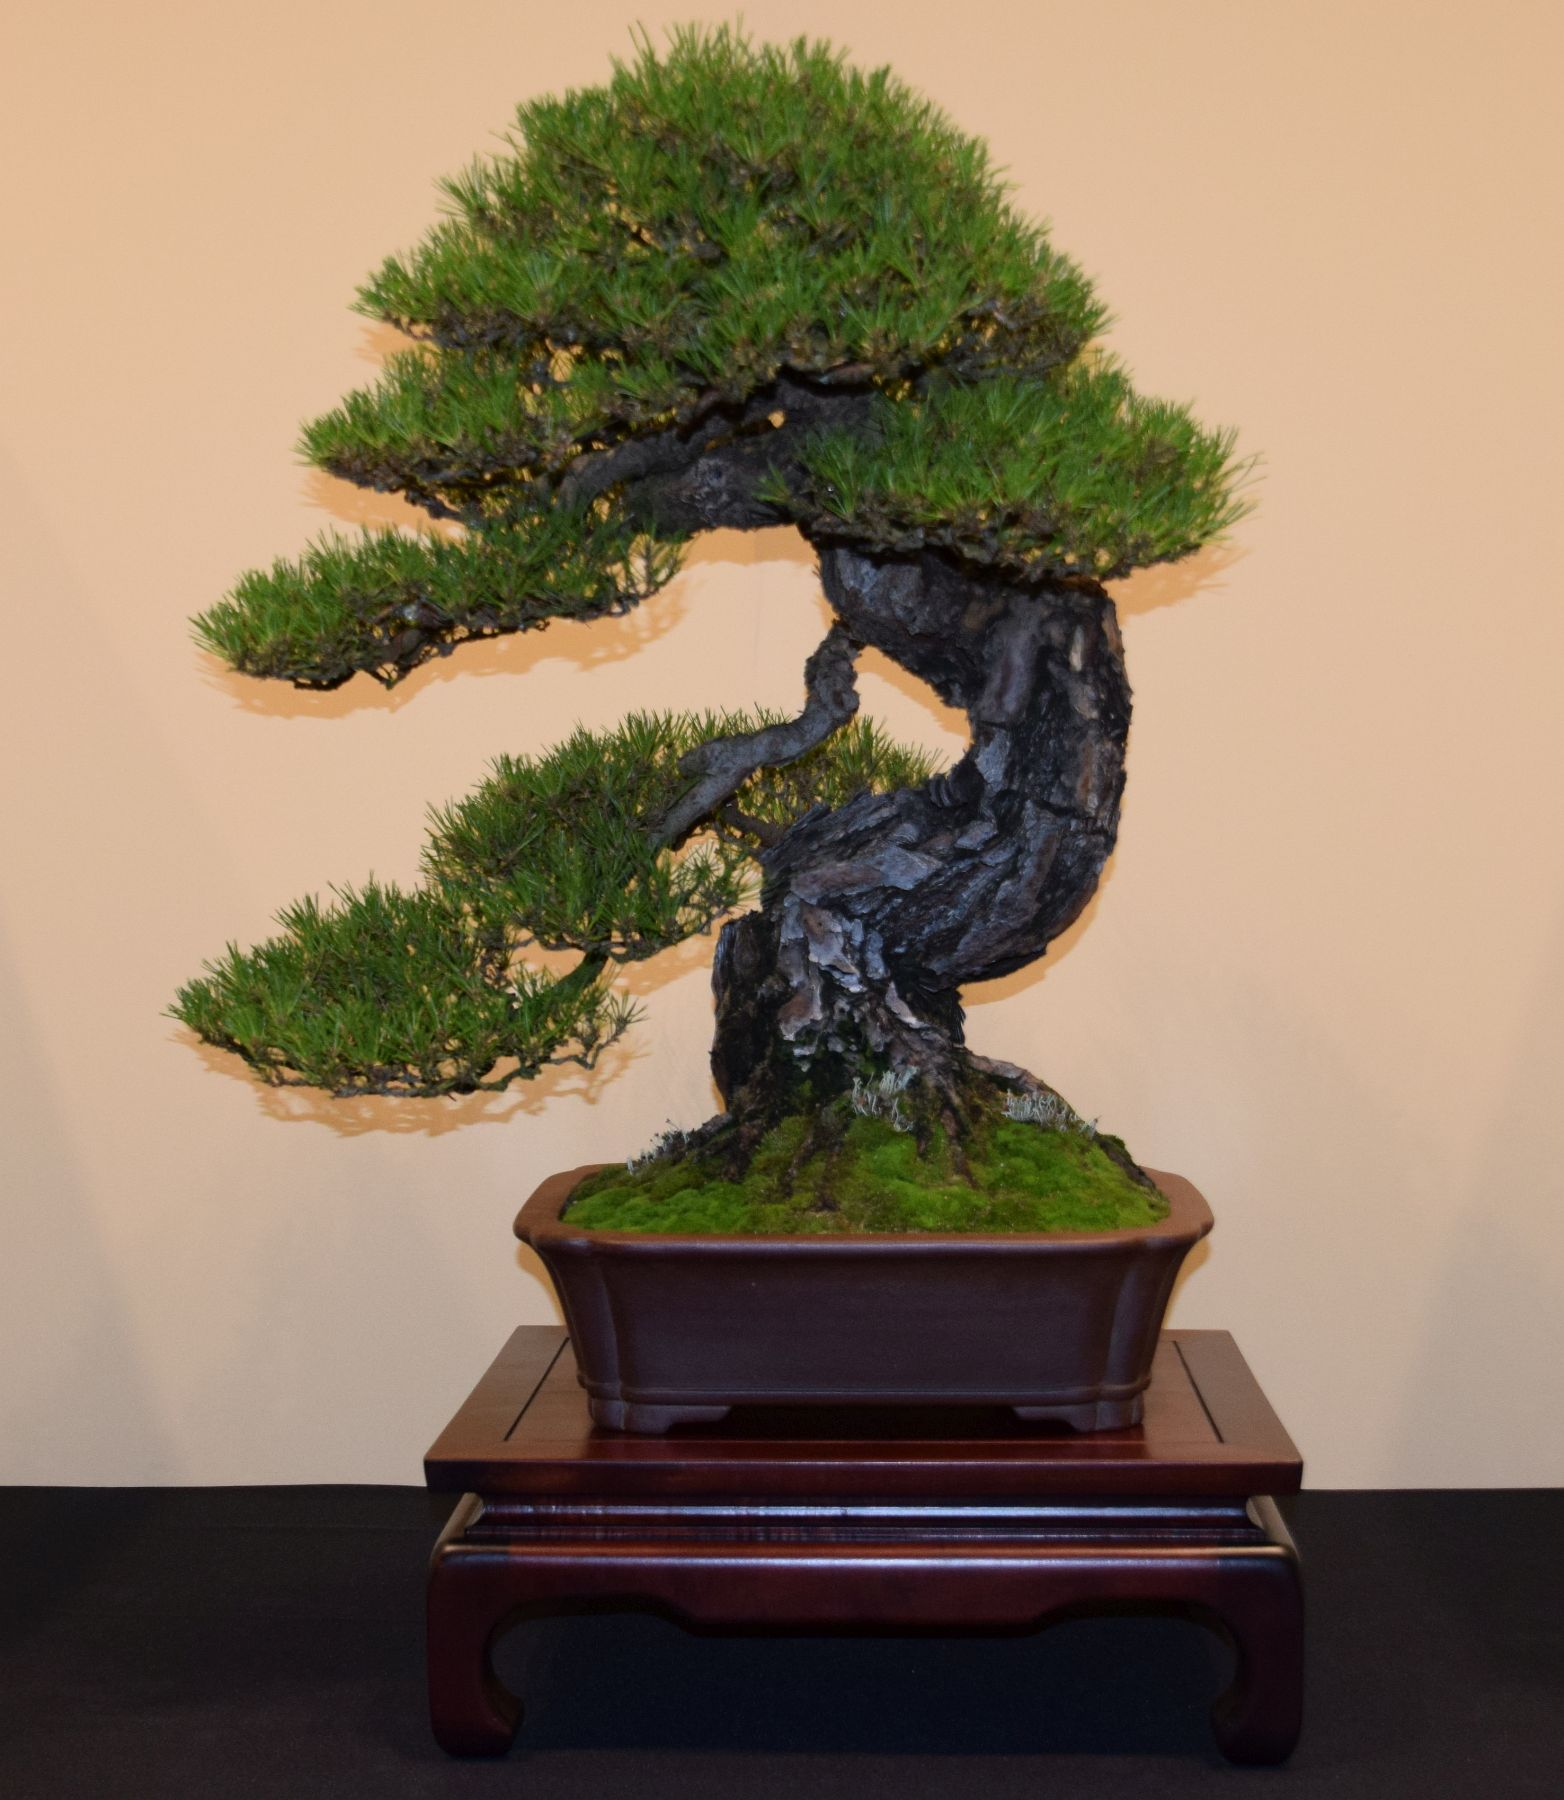 euk-bonsai-ten-2016-jp-polmans-collectie-009